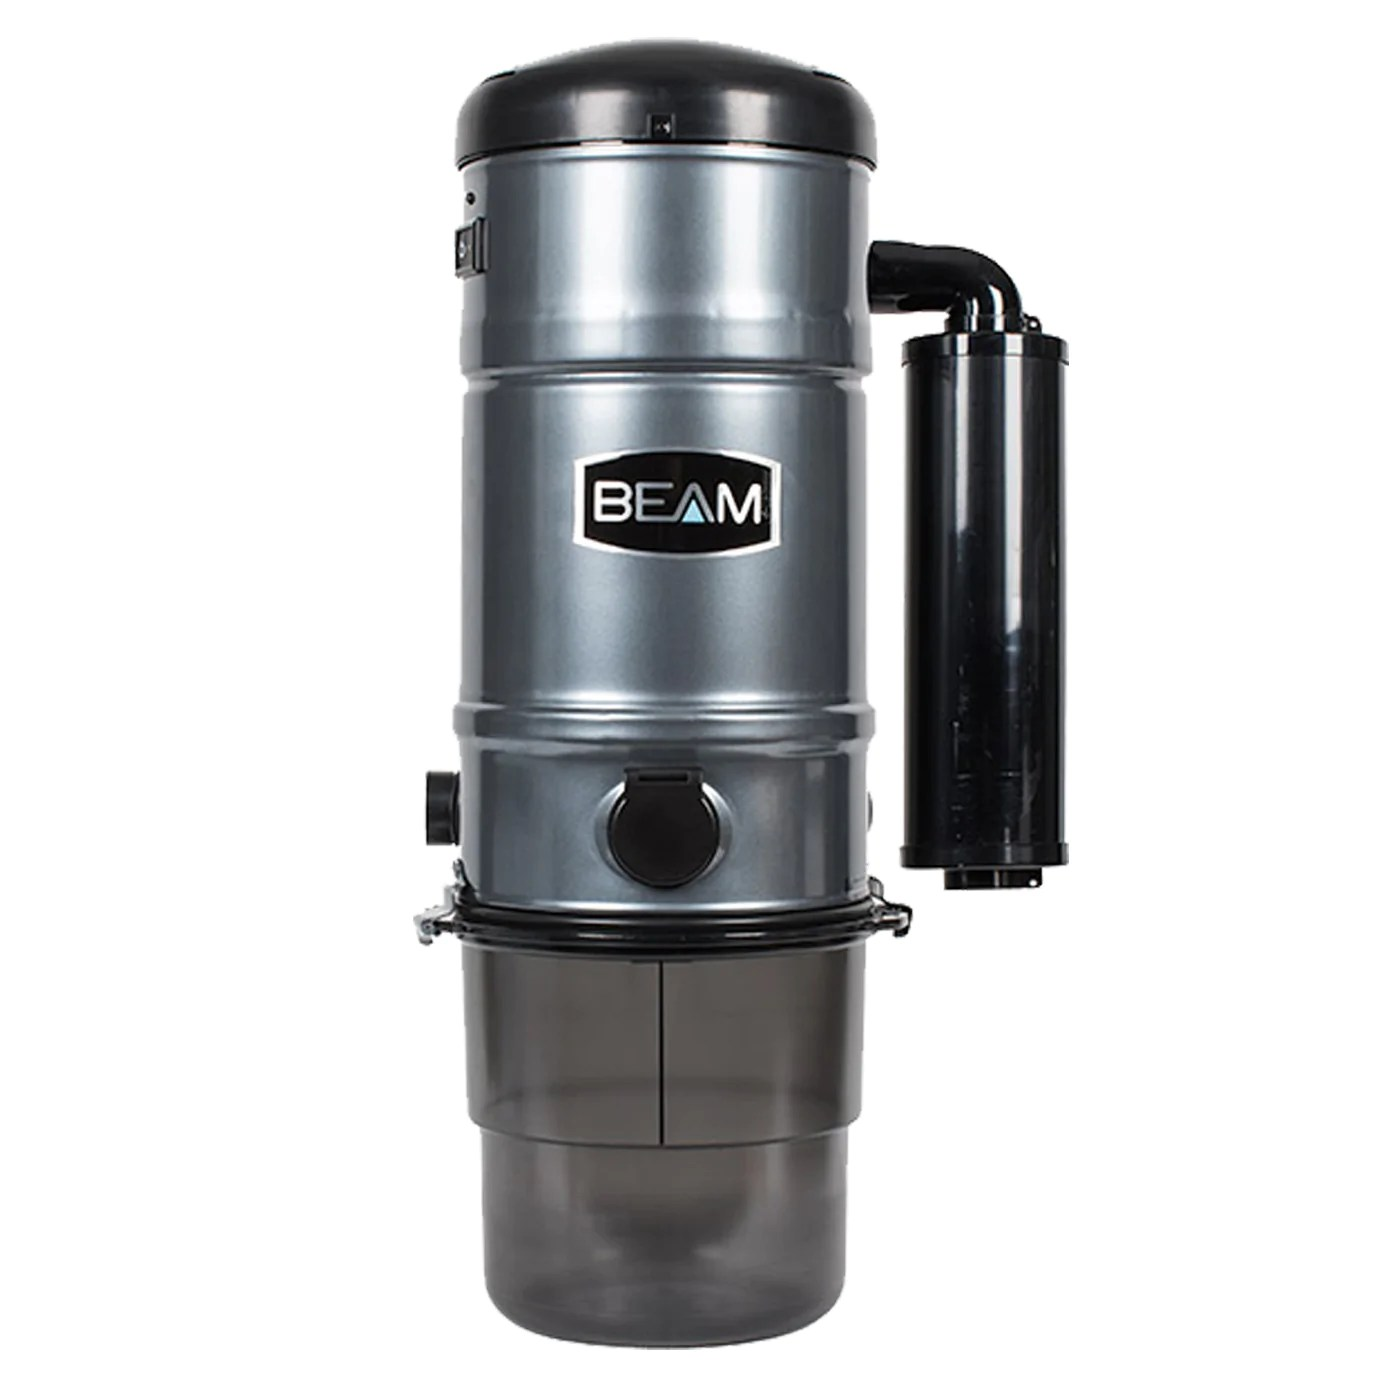 hight resolution of beam serenity 325d central vacuum canister